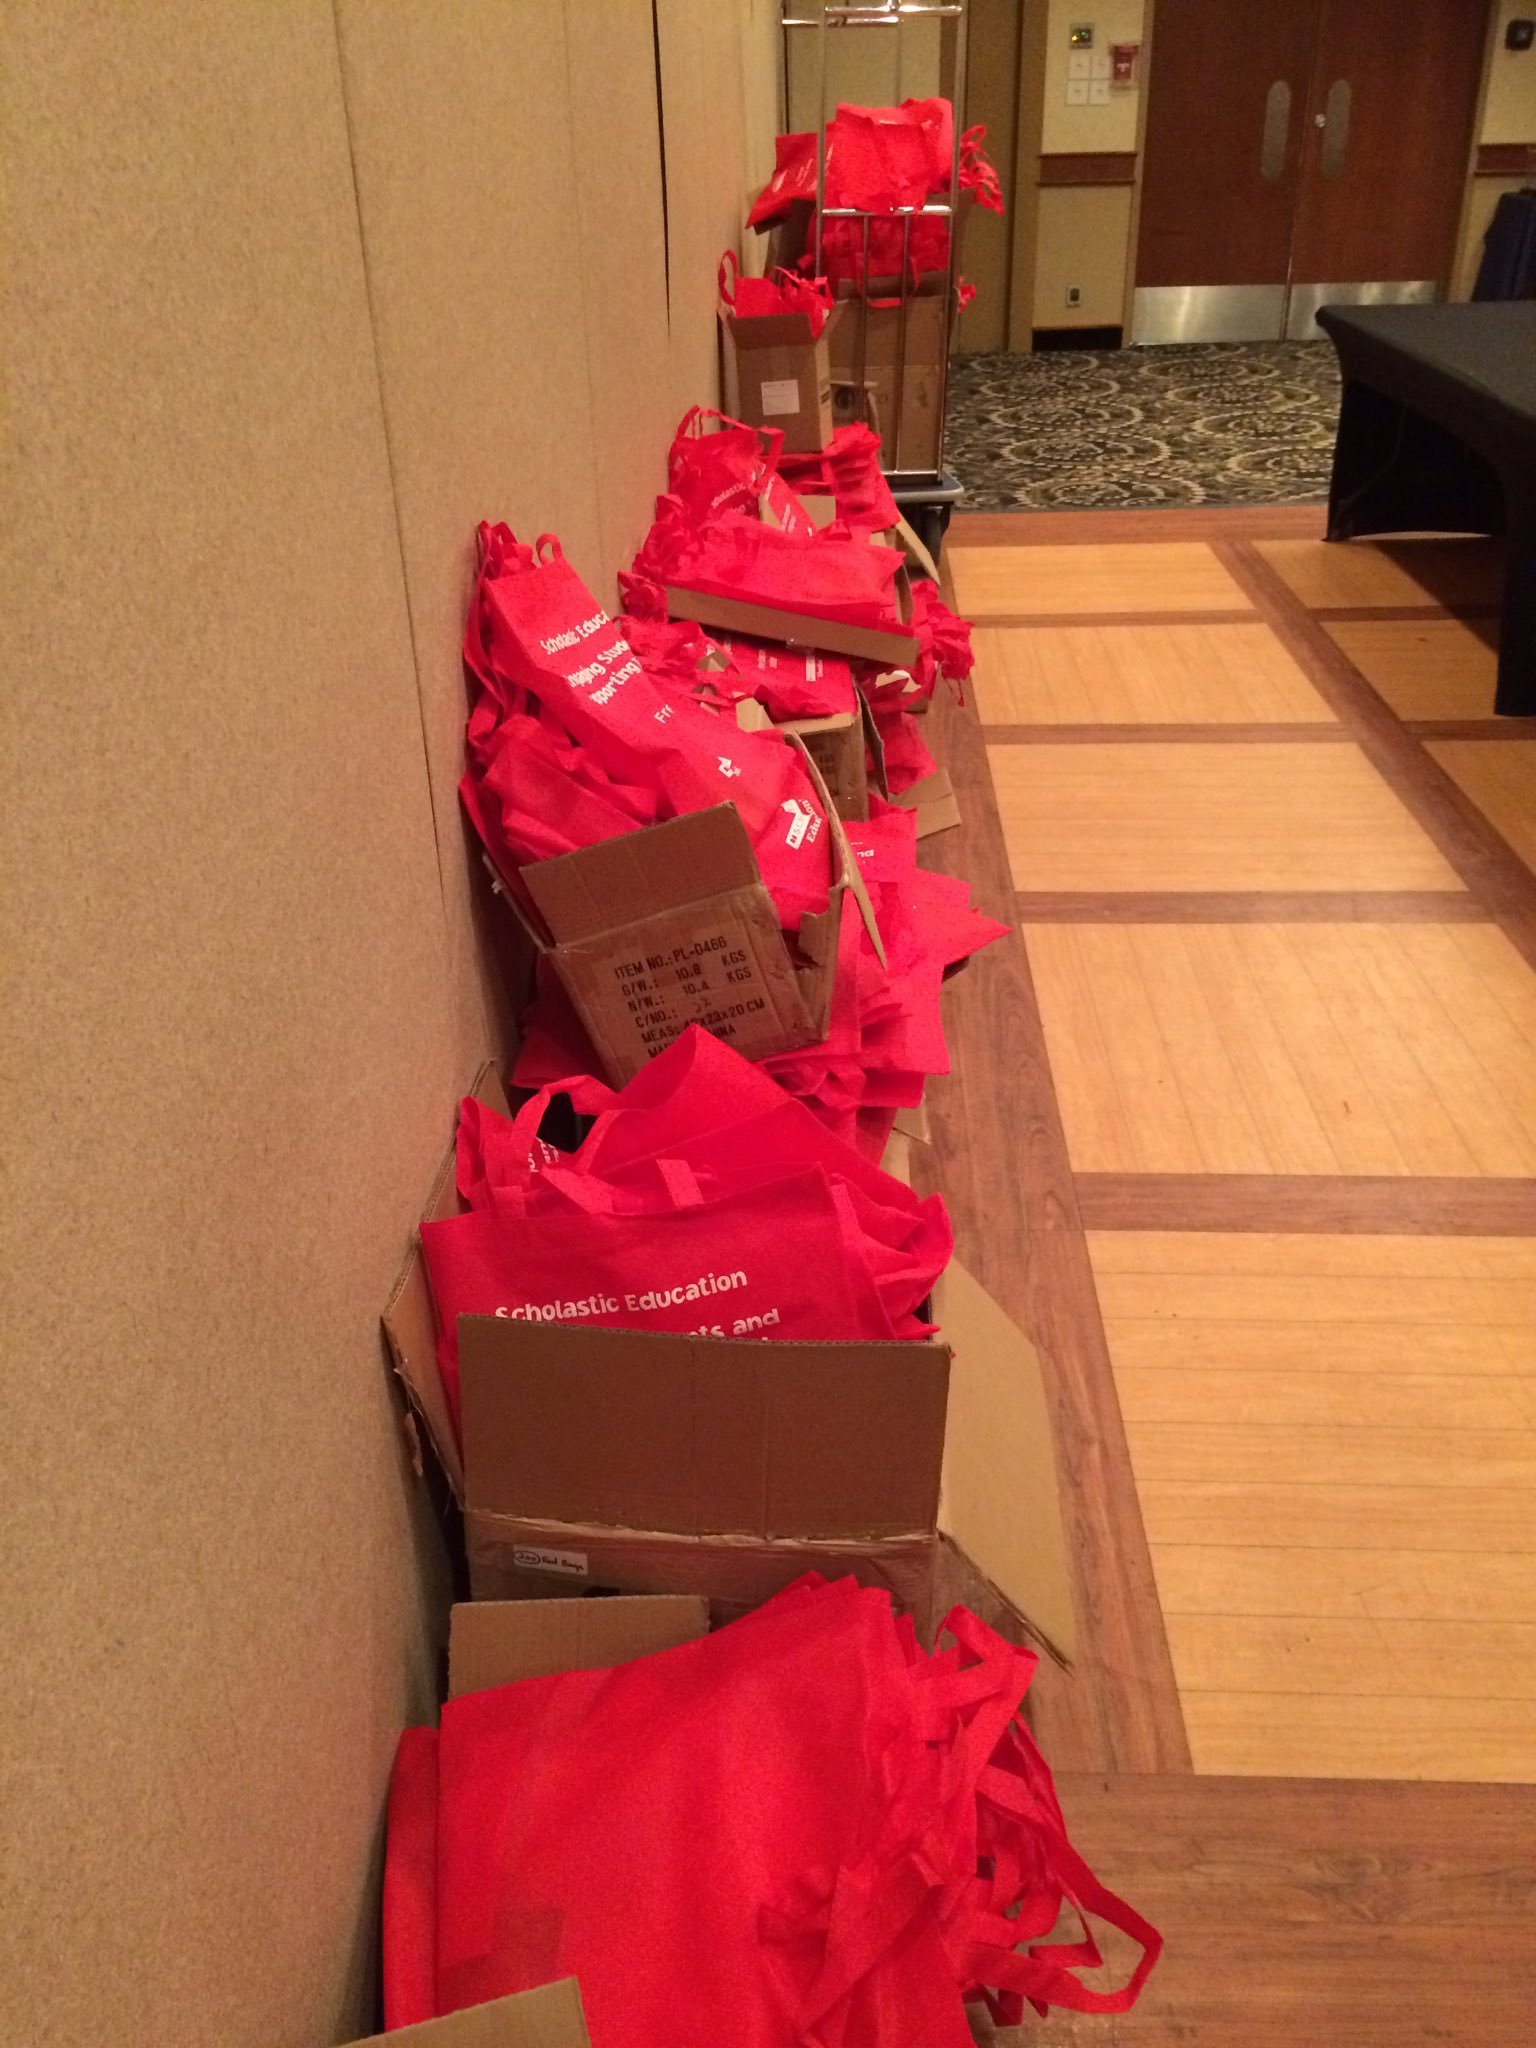 Maybe around 500 Scholastic bags ready to hand out to registrants. #mrasummit https://t.co/FR2aYKqnyy